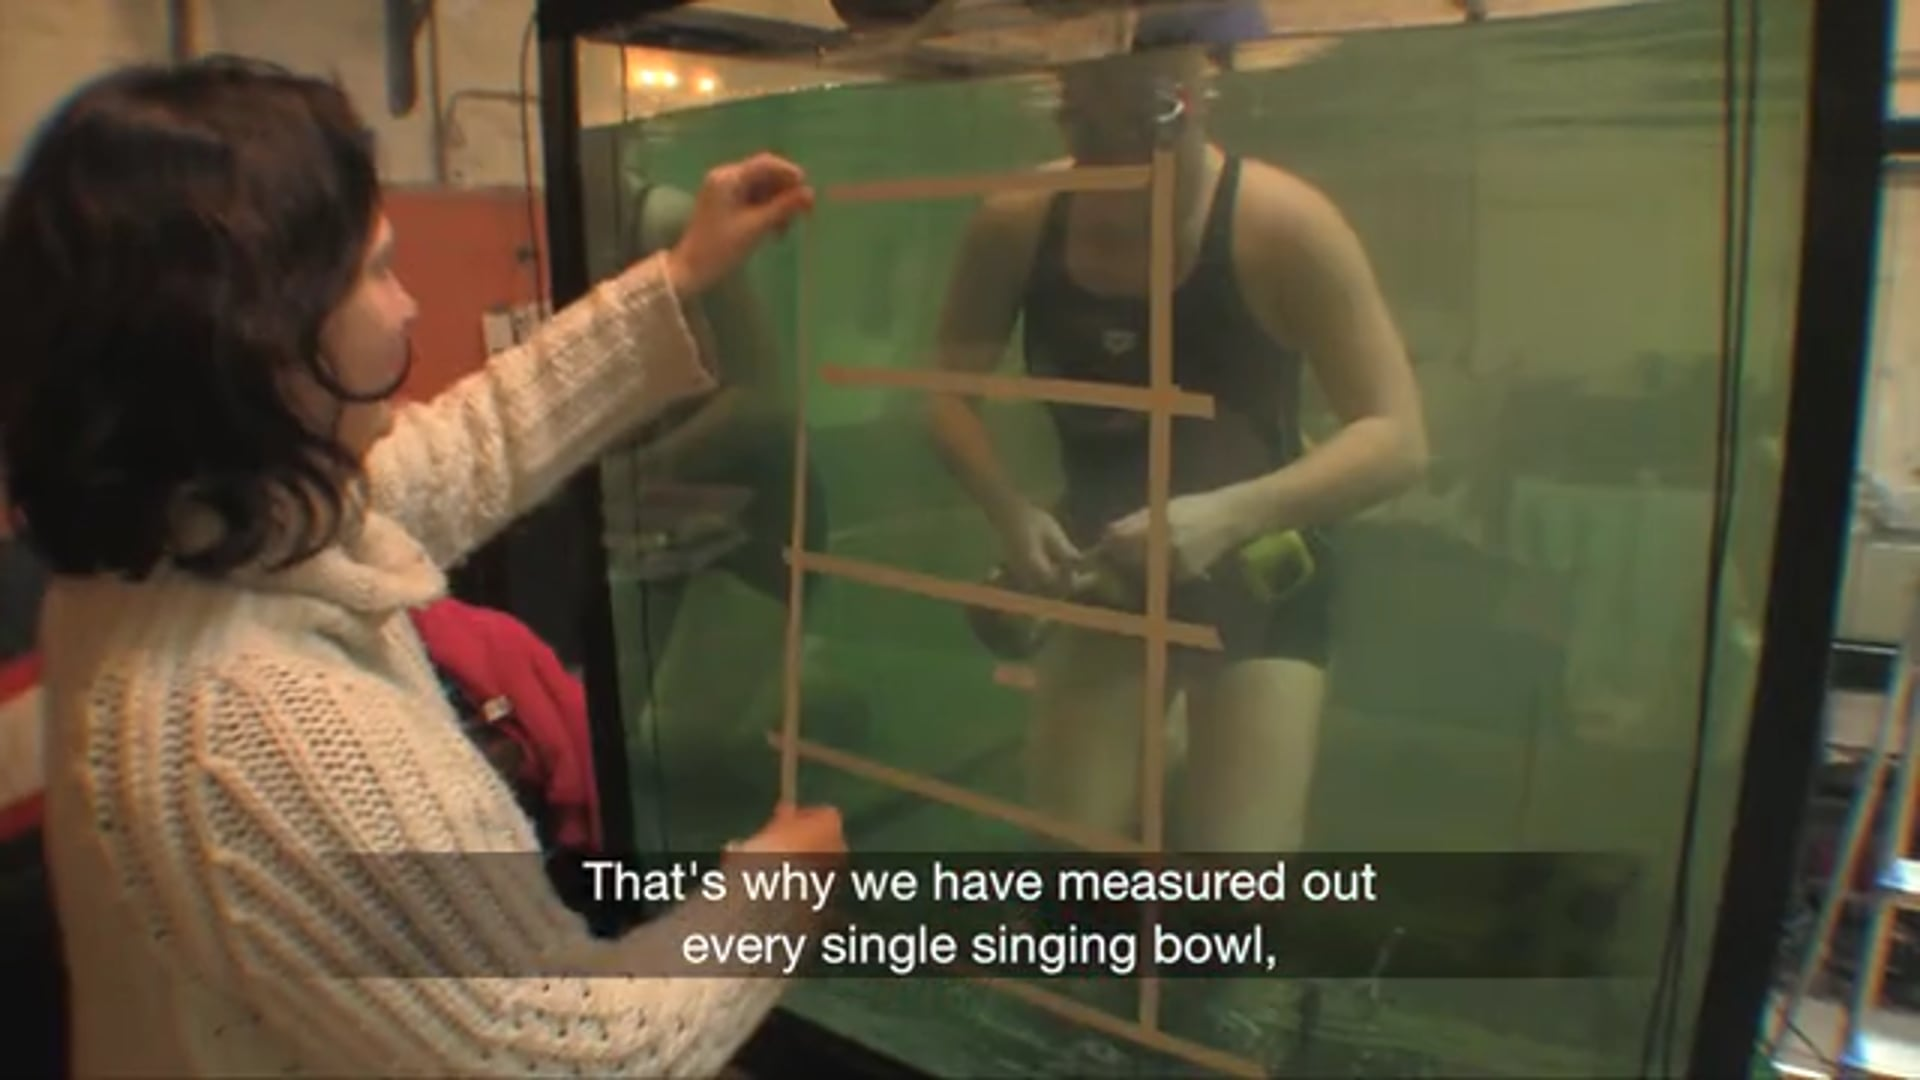 Acoustics and Percussion under water